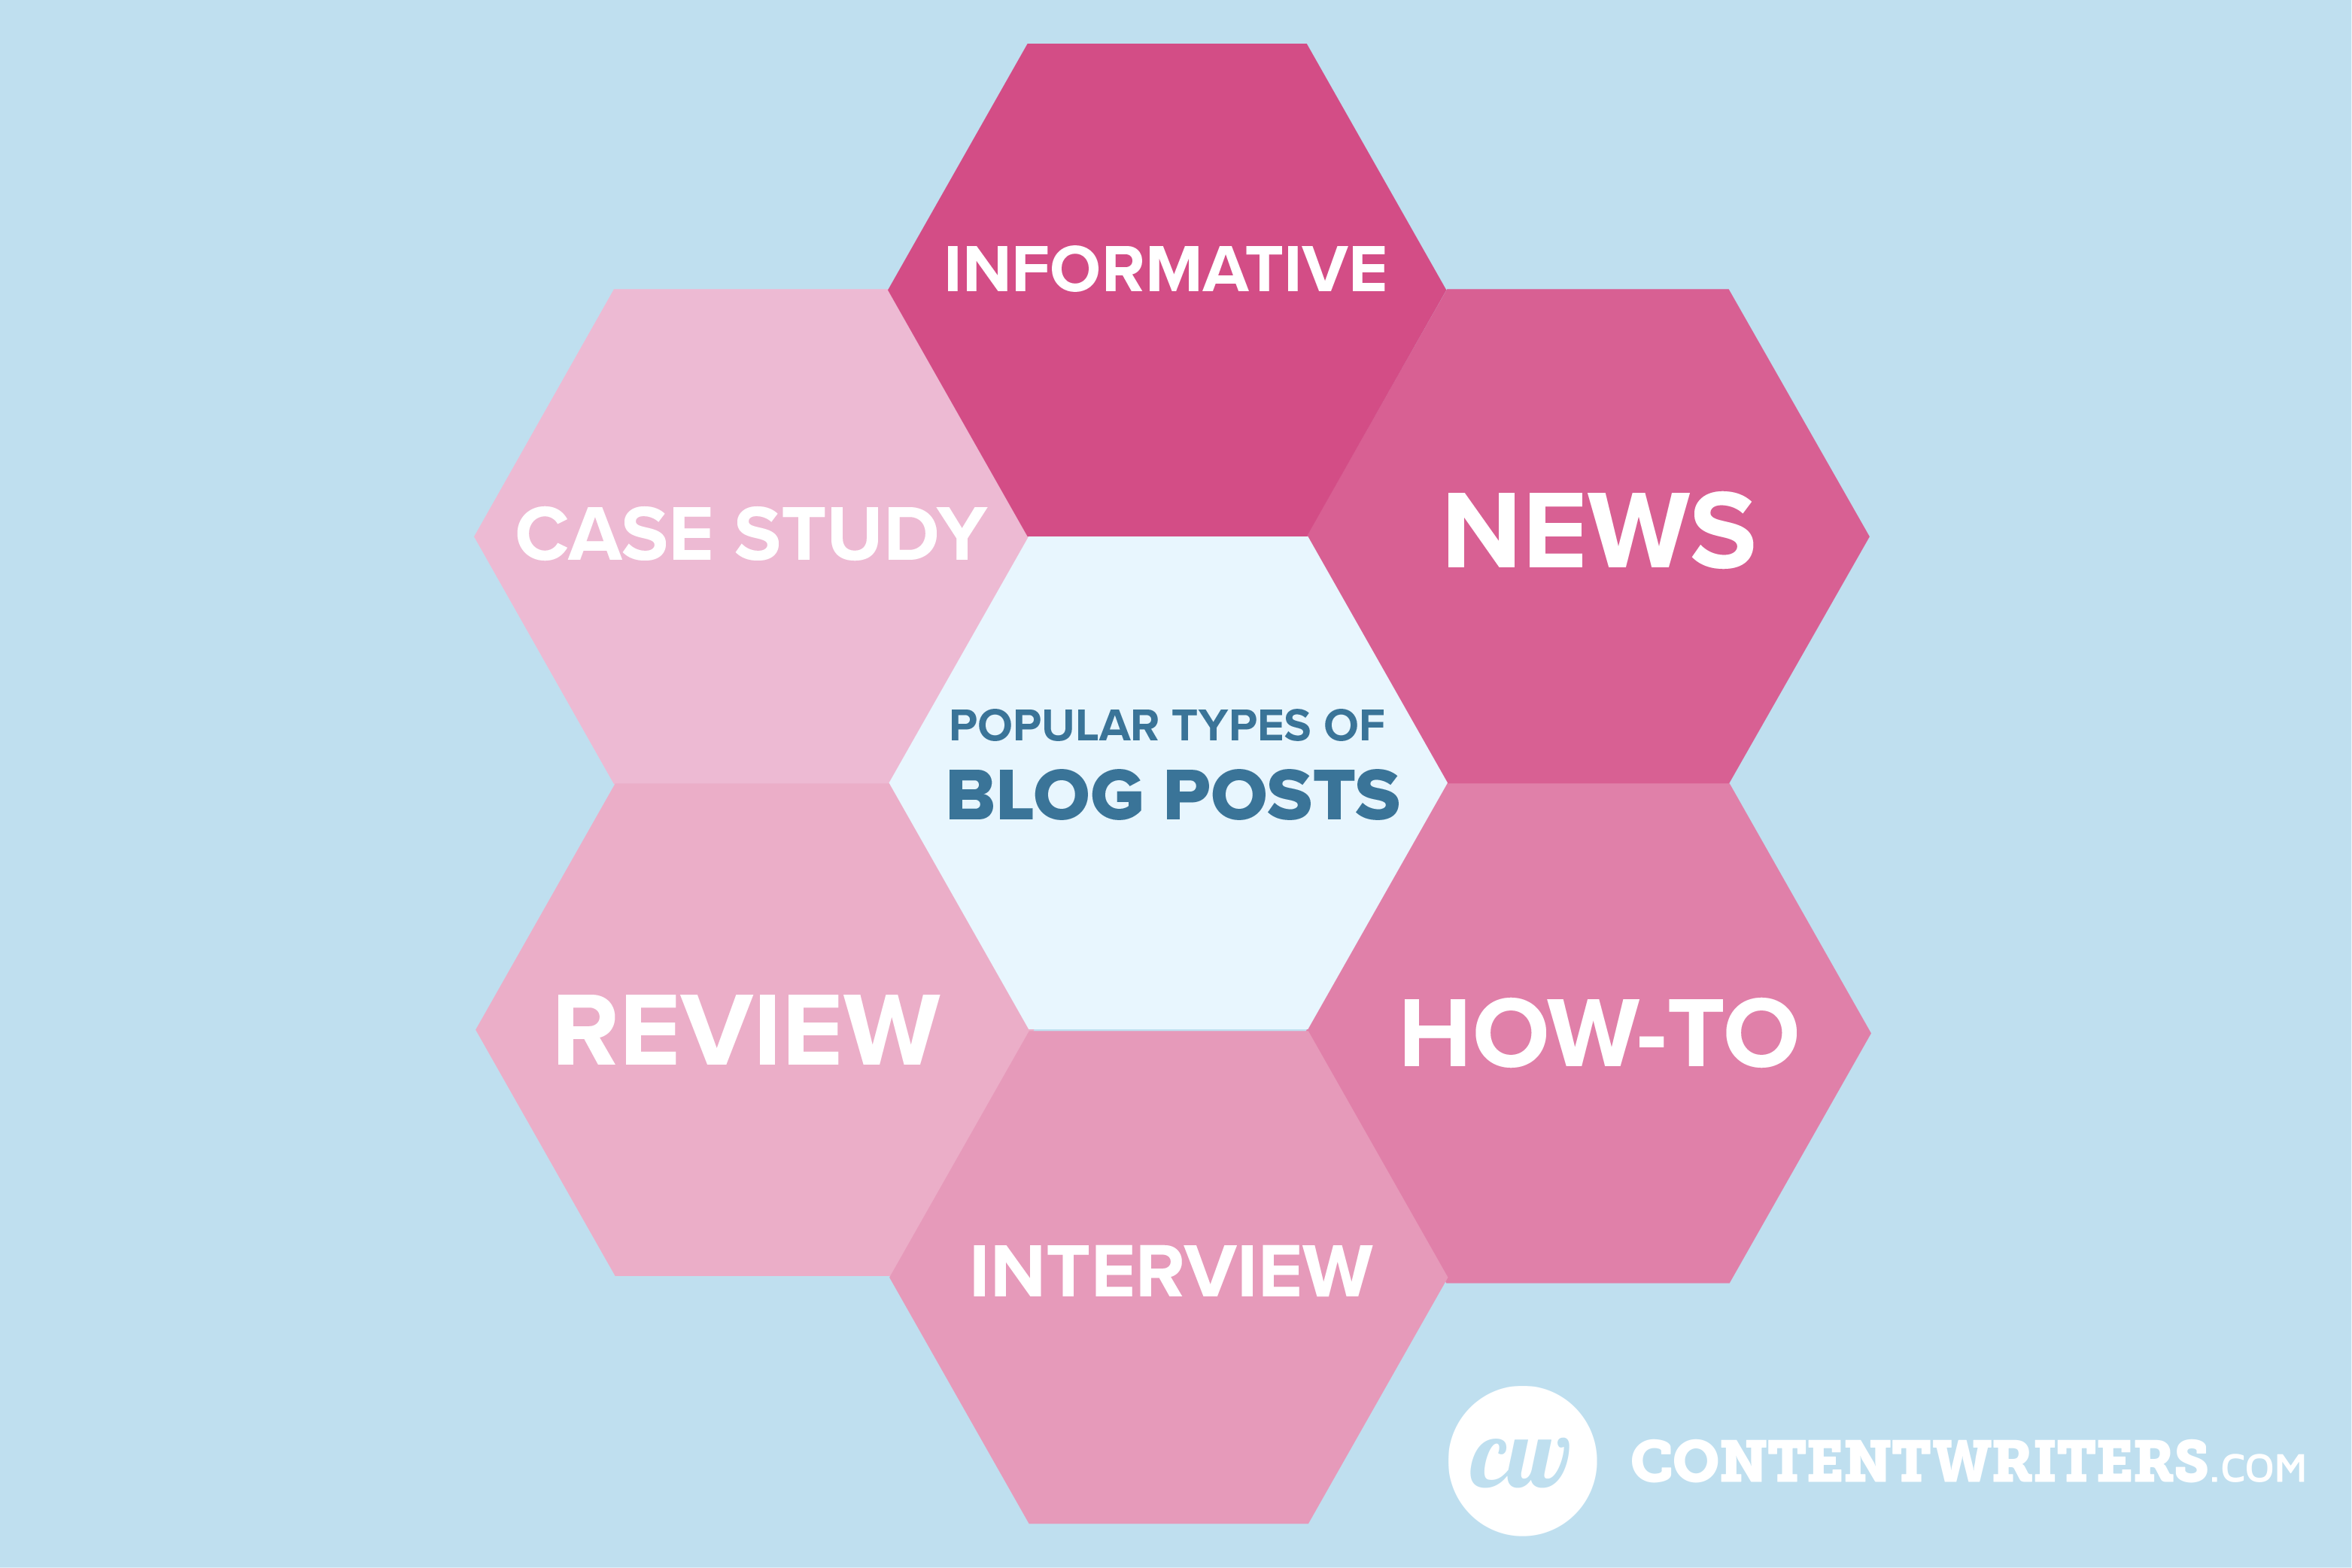 Popular Types of Blog Posts